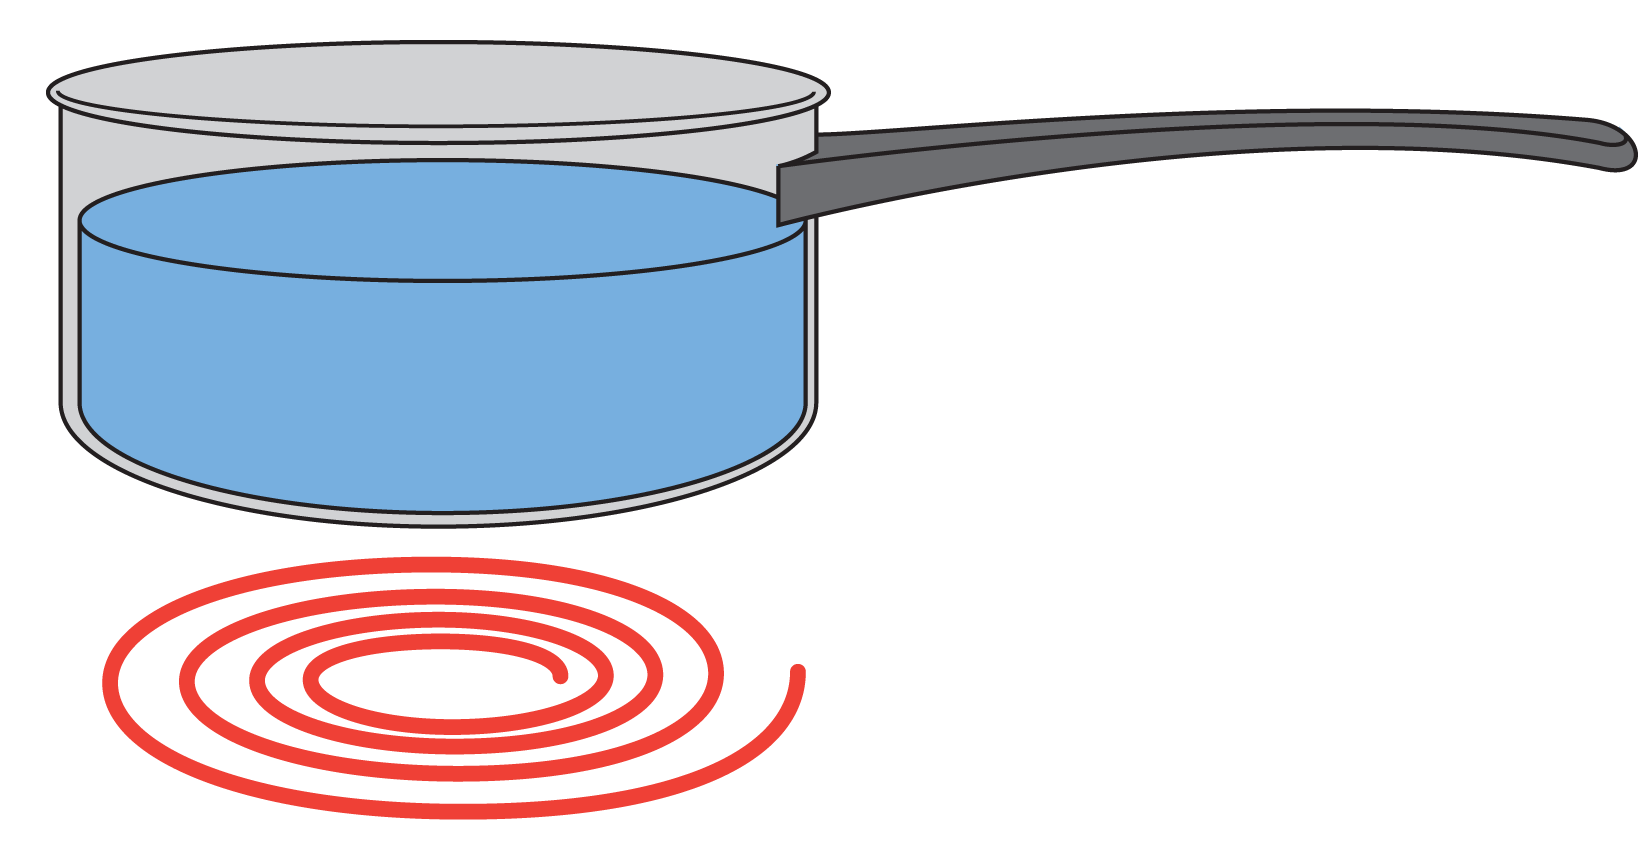 Thermal secrets to boiling. Evaporation clipart boiled water